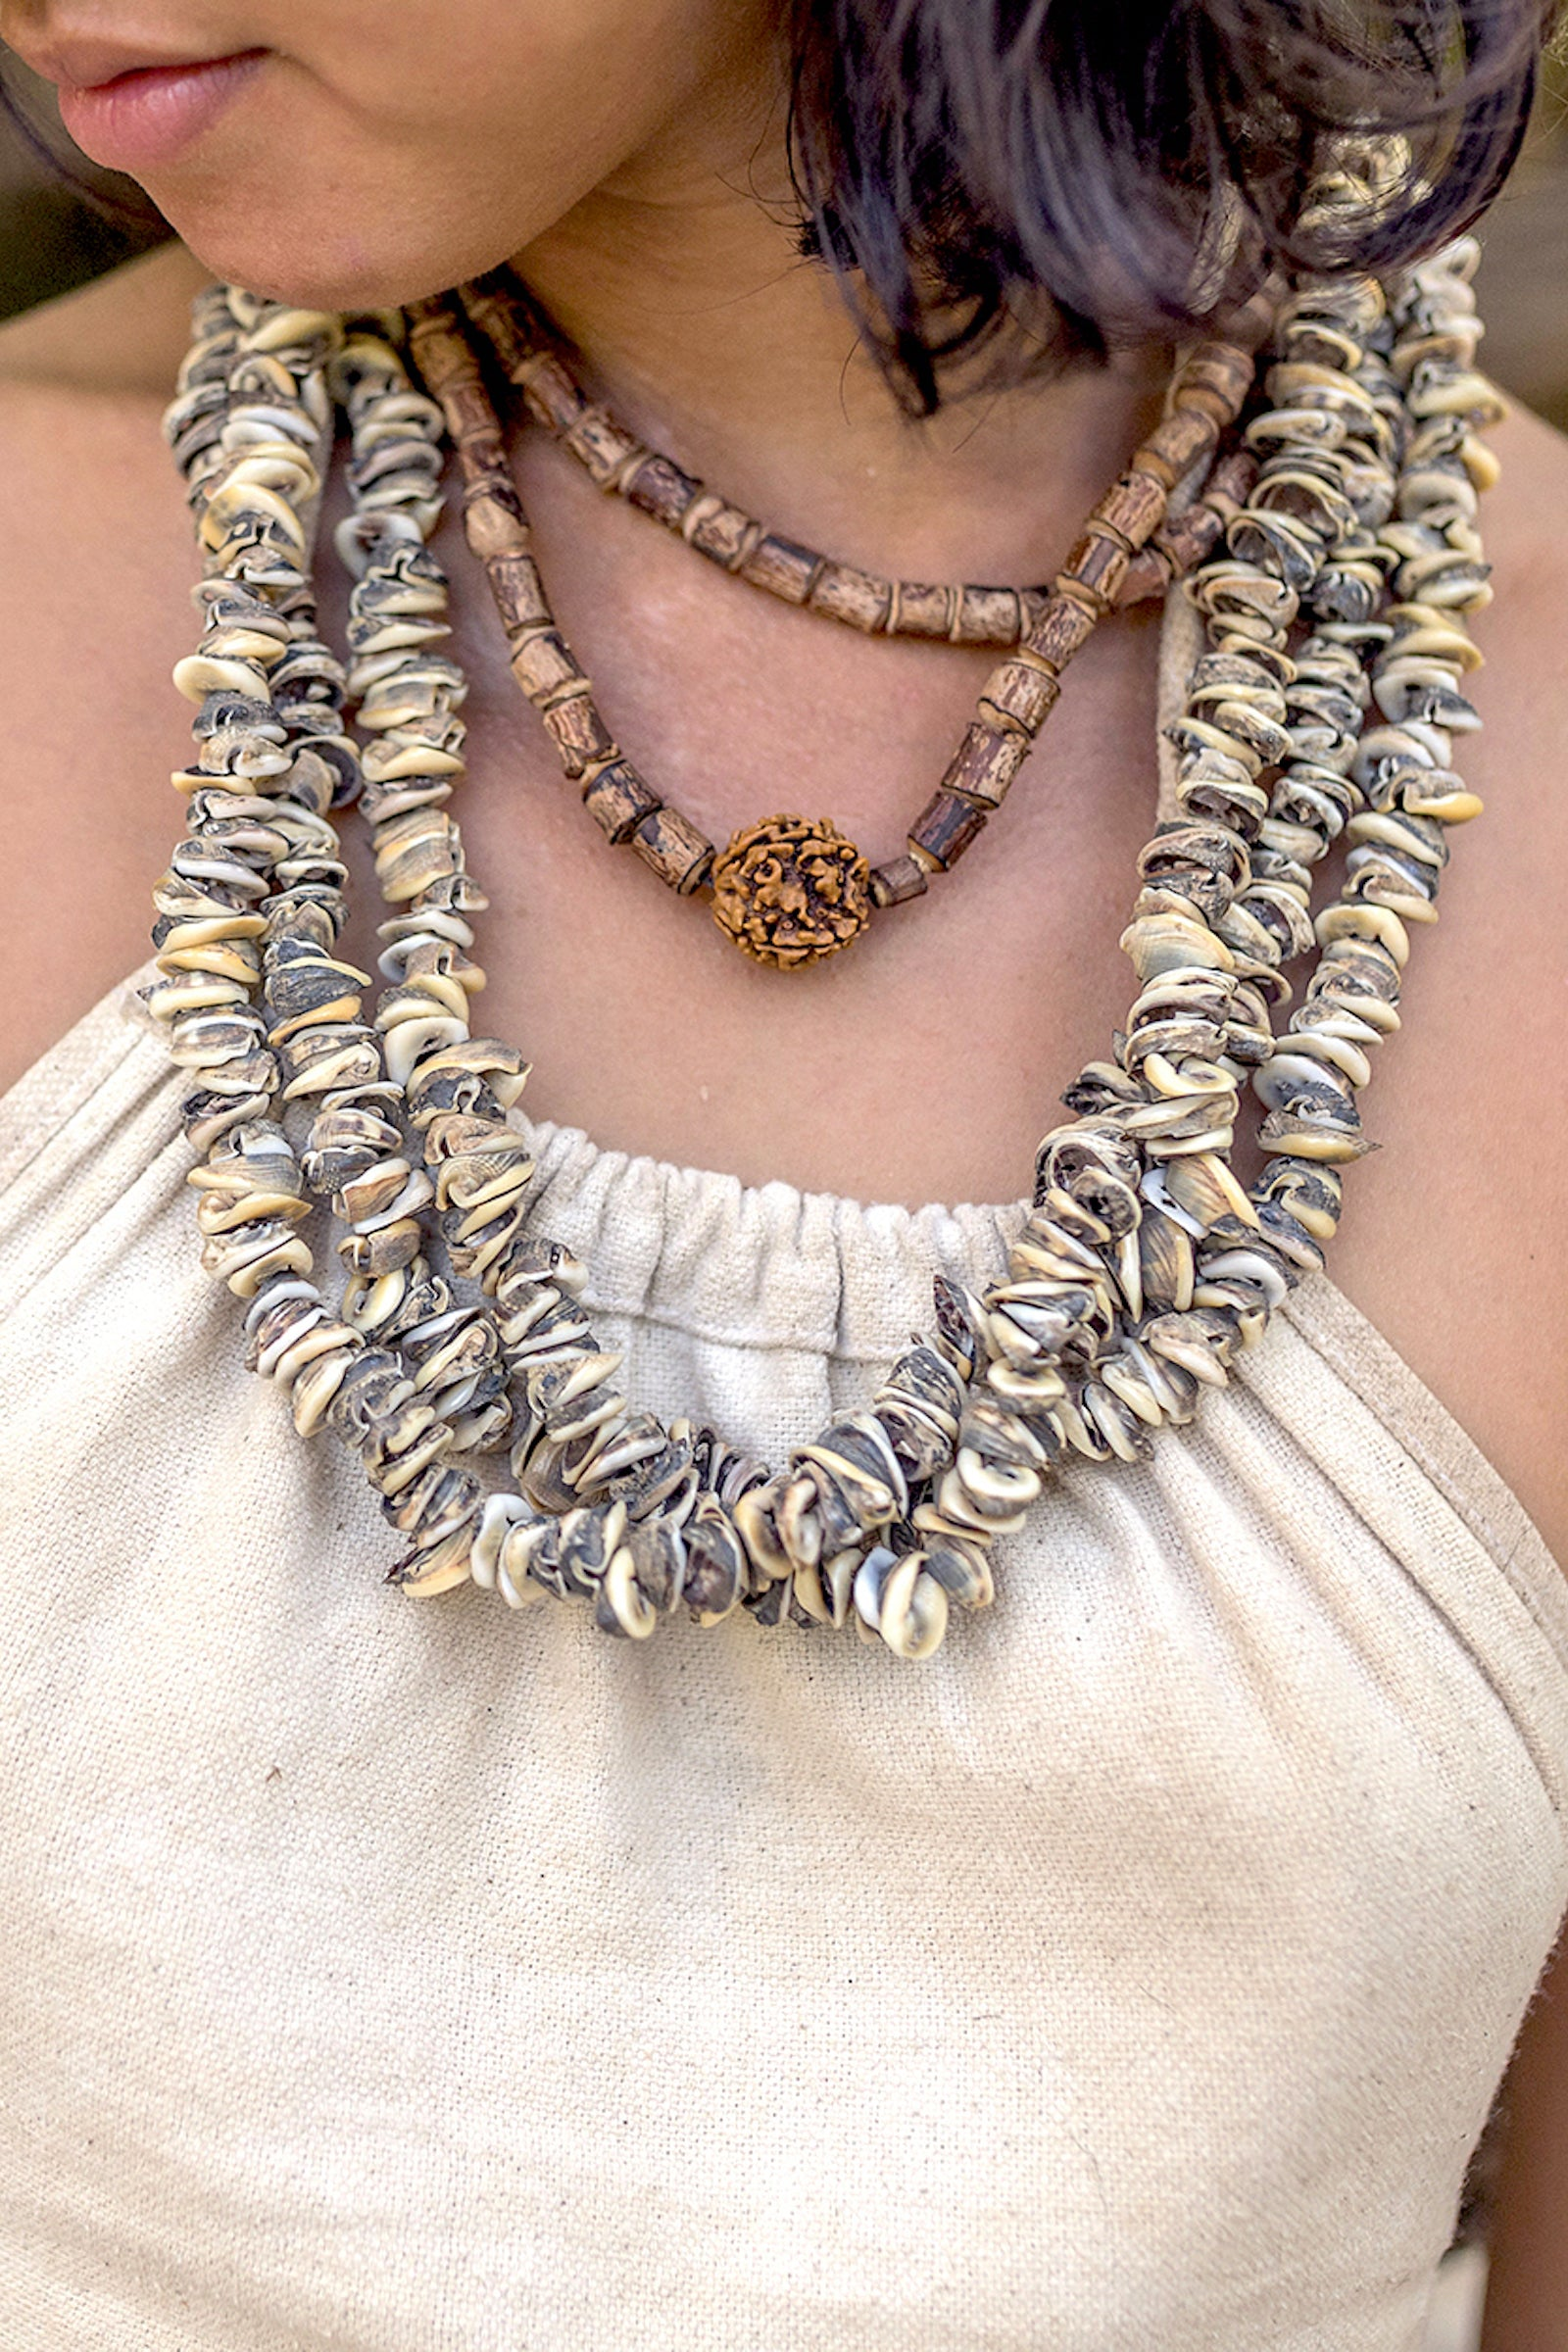 Papua Tribal Sea Shells 3 Strands Necklace • Natural jewelry • Handmade jewelry • Tribal Necklace • Tribal jewelry • Ethnic necklace